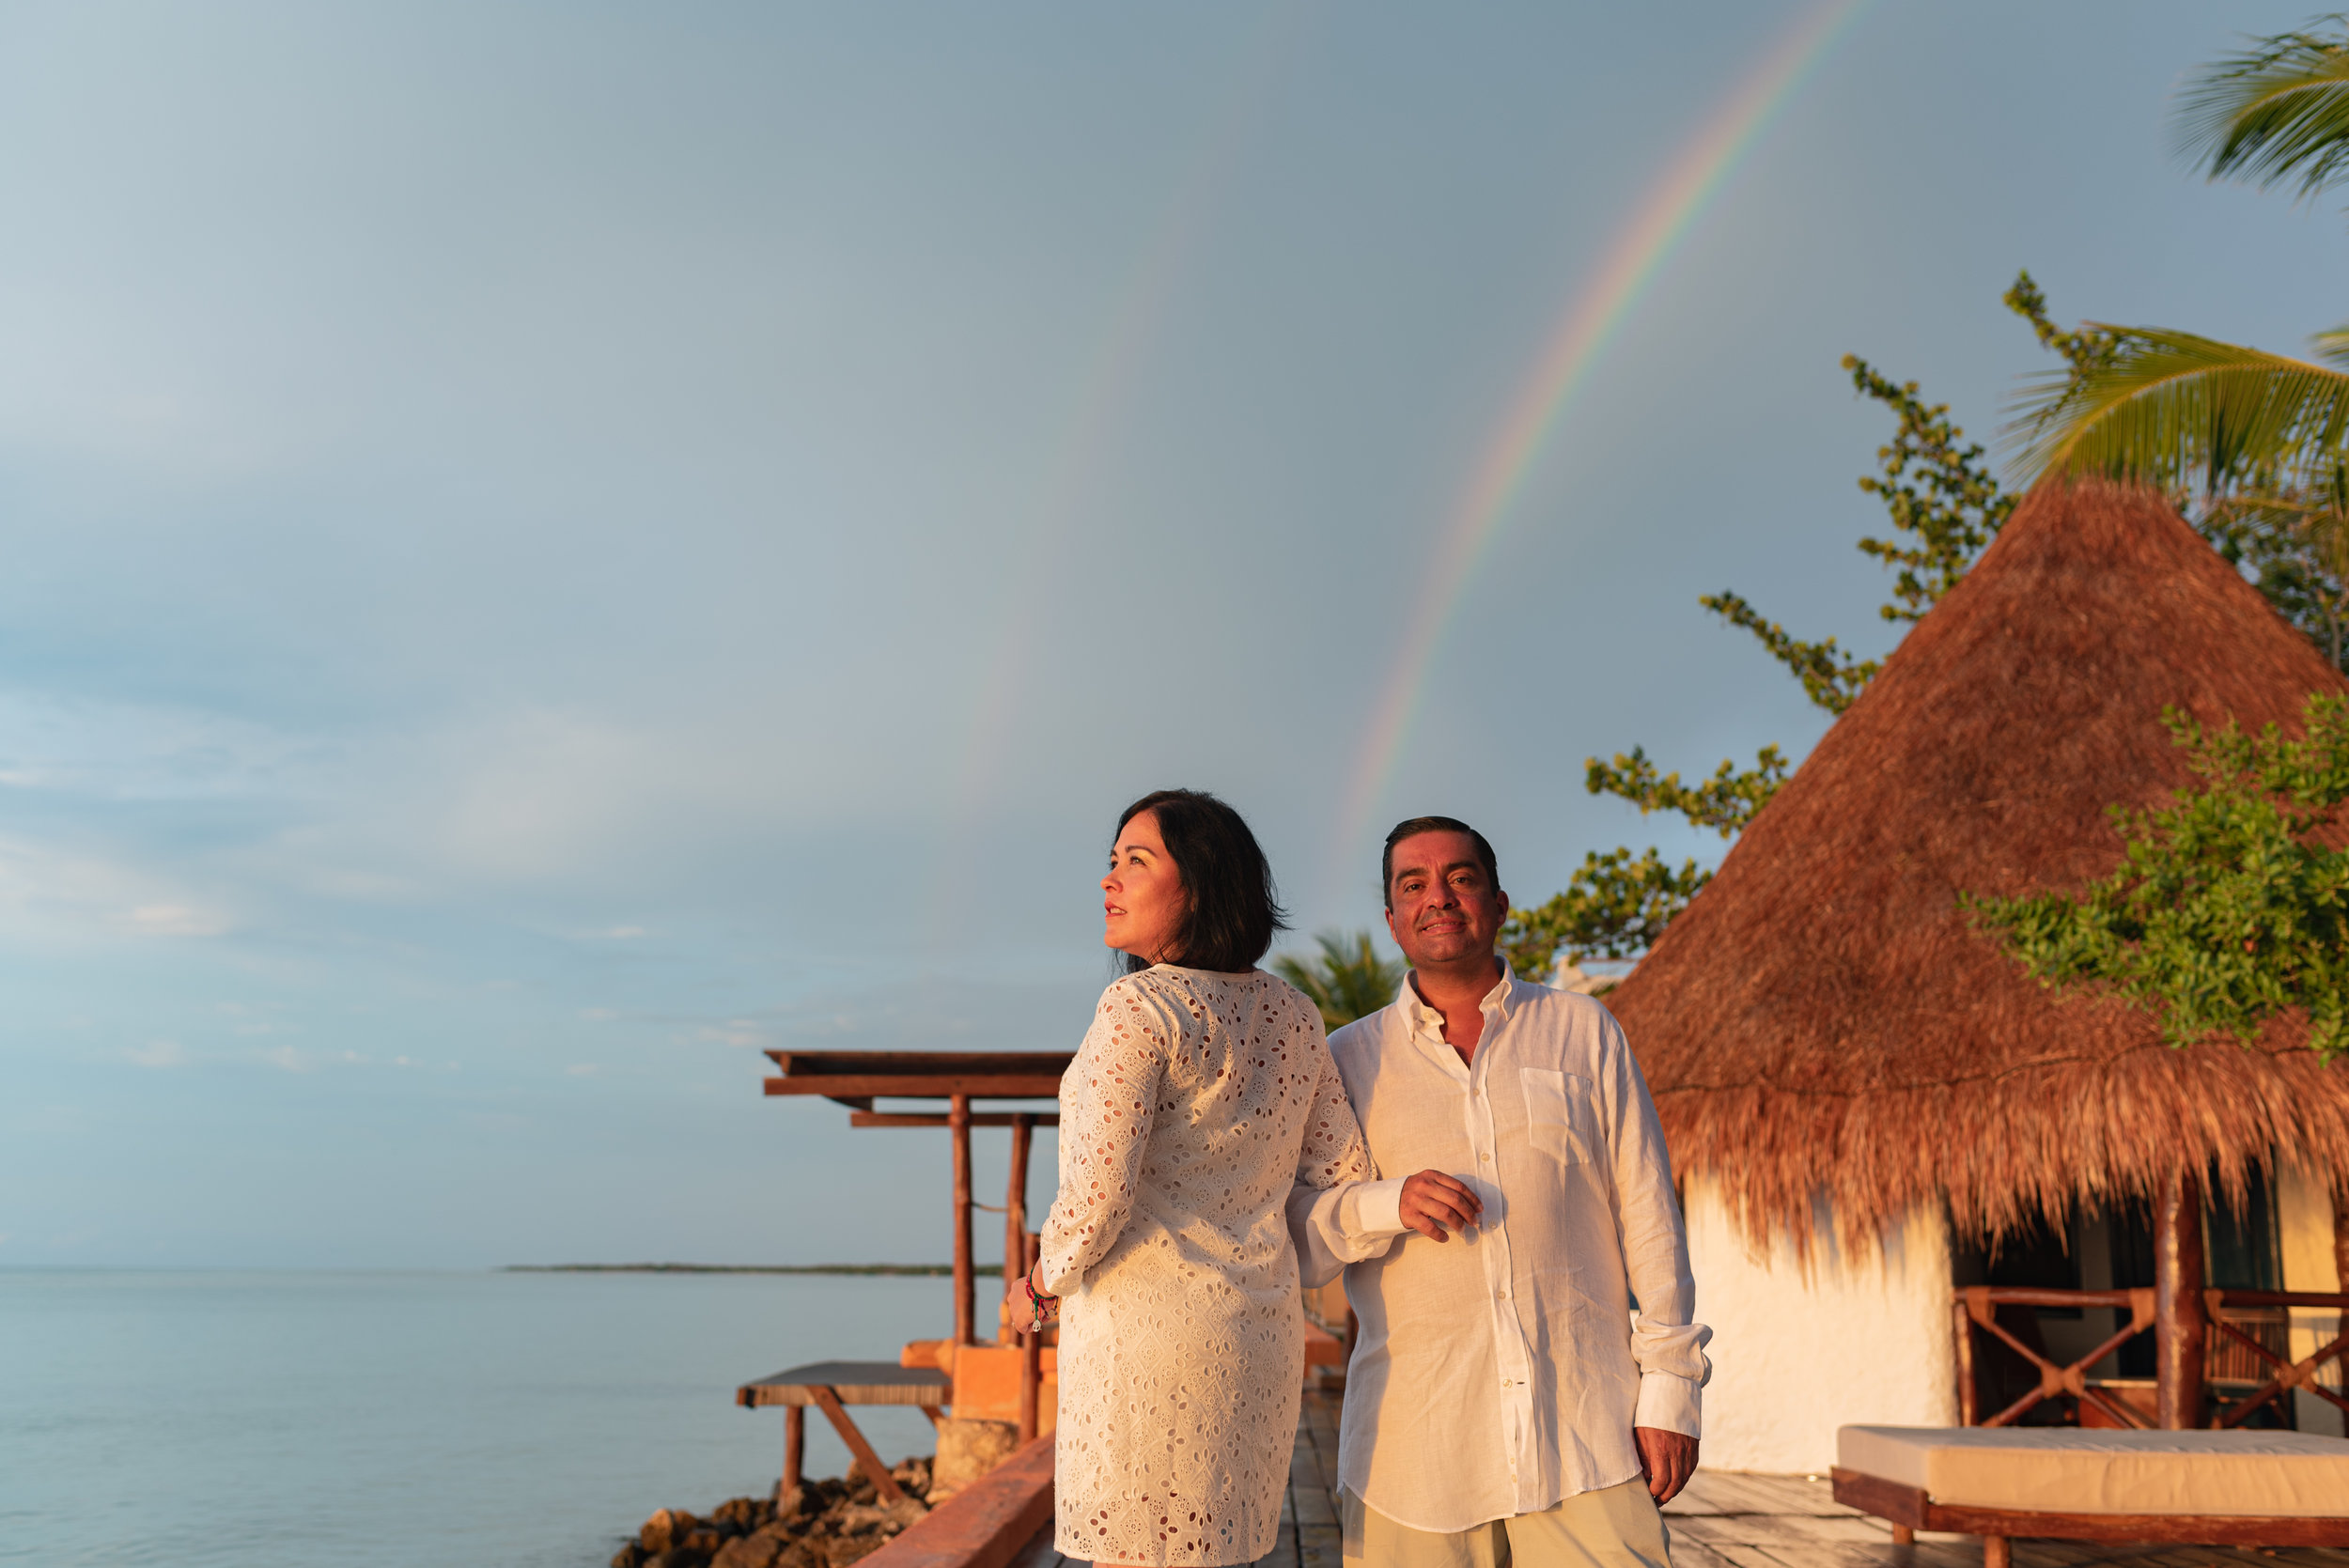 Holbox couples photoshoots f&f series 2 by @emmanuelphotoartist